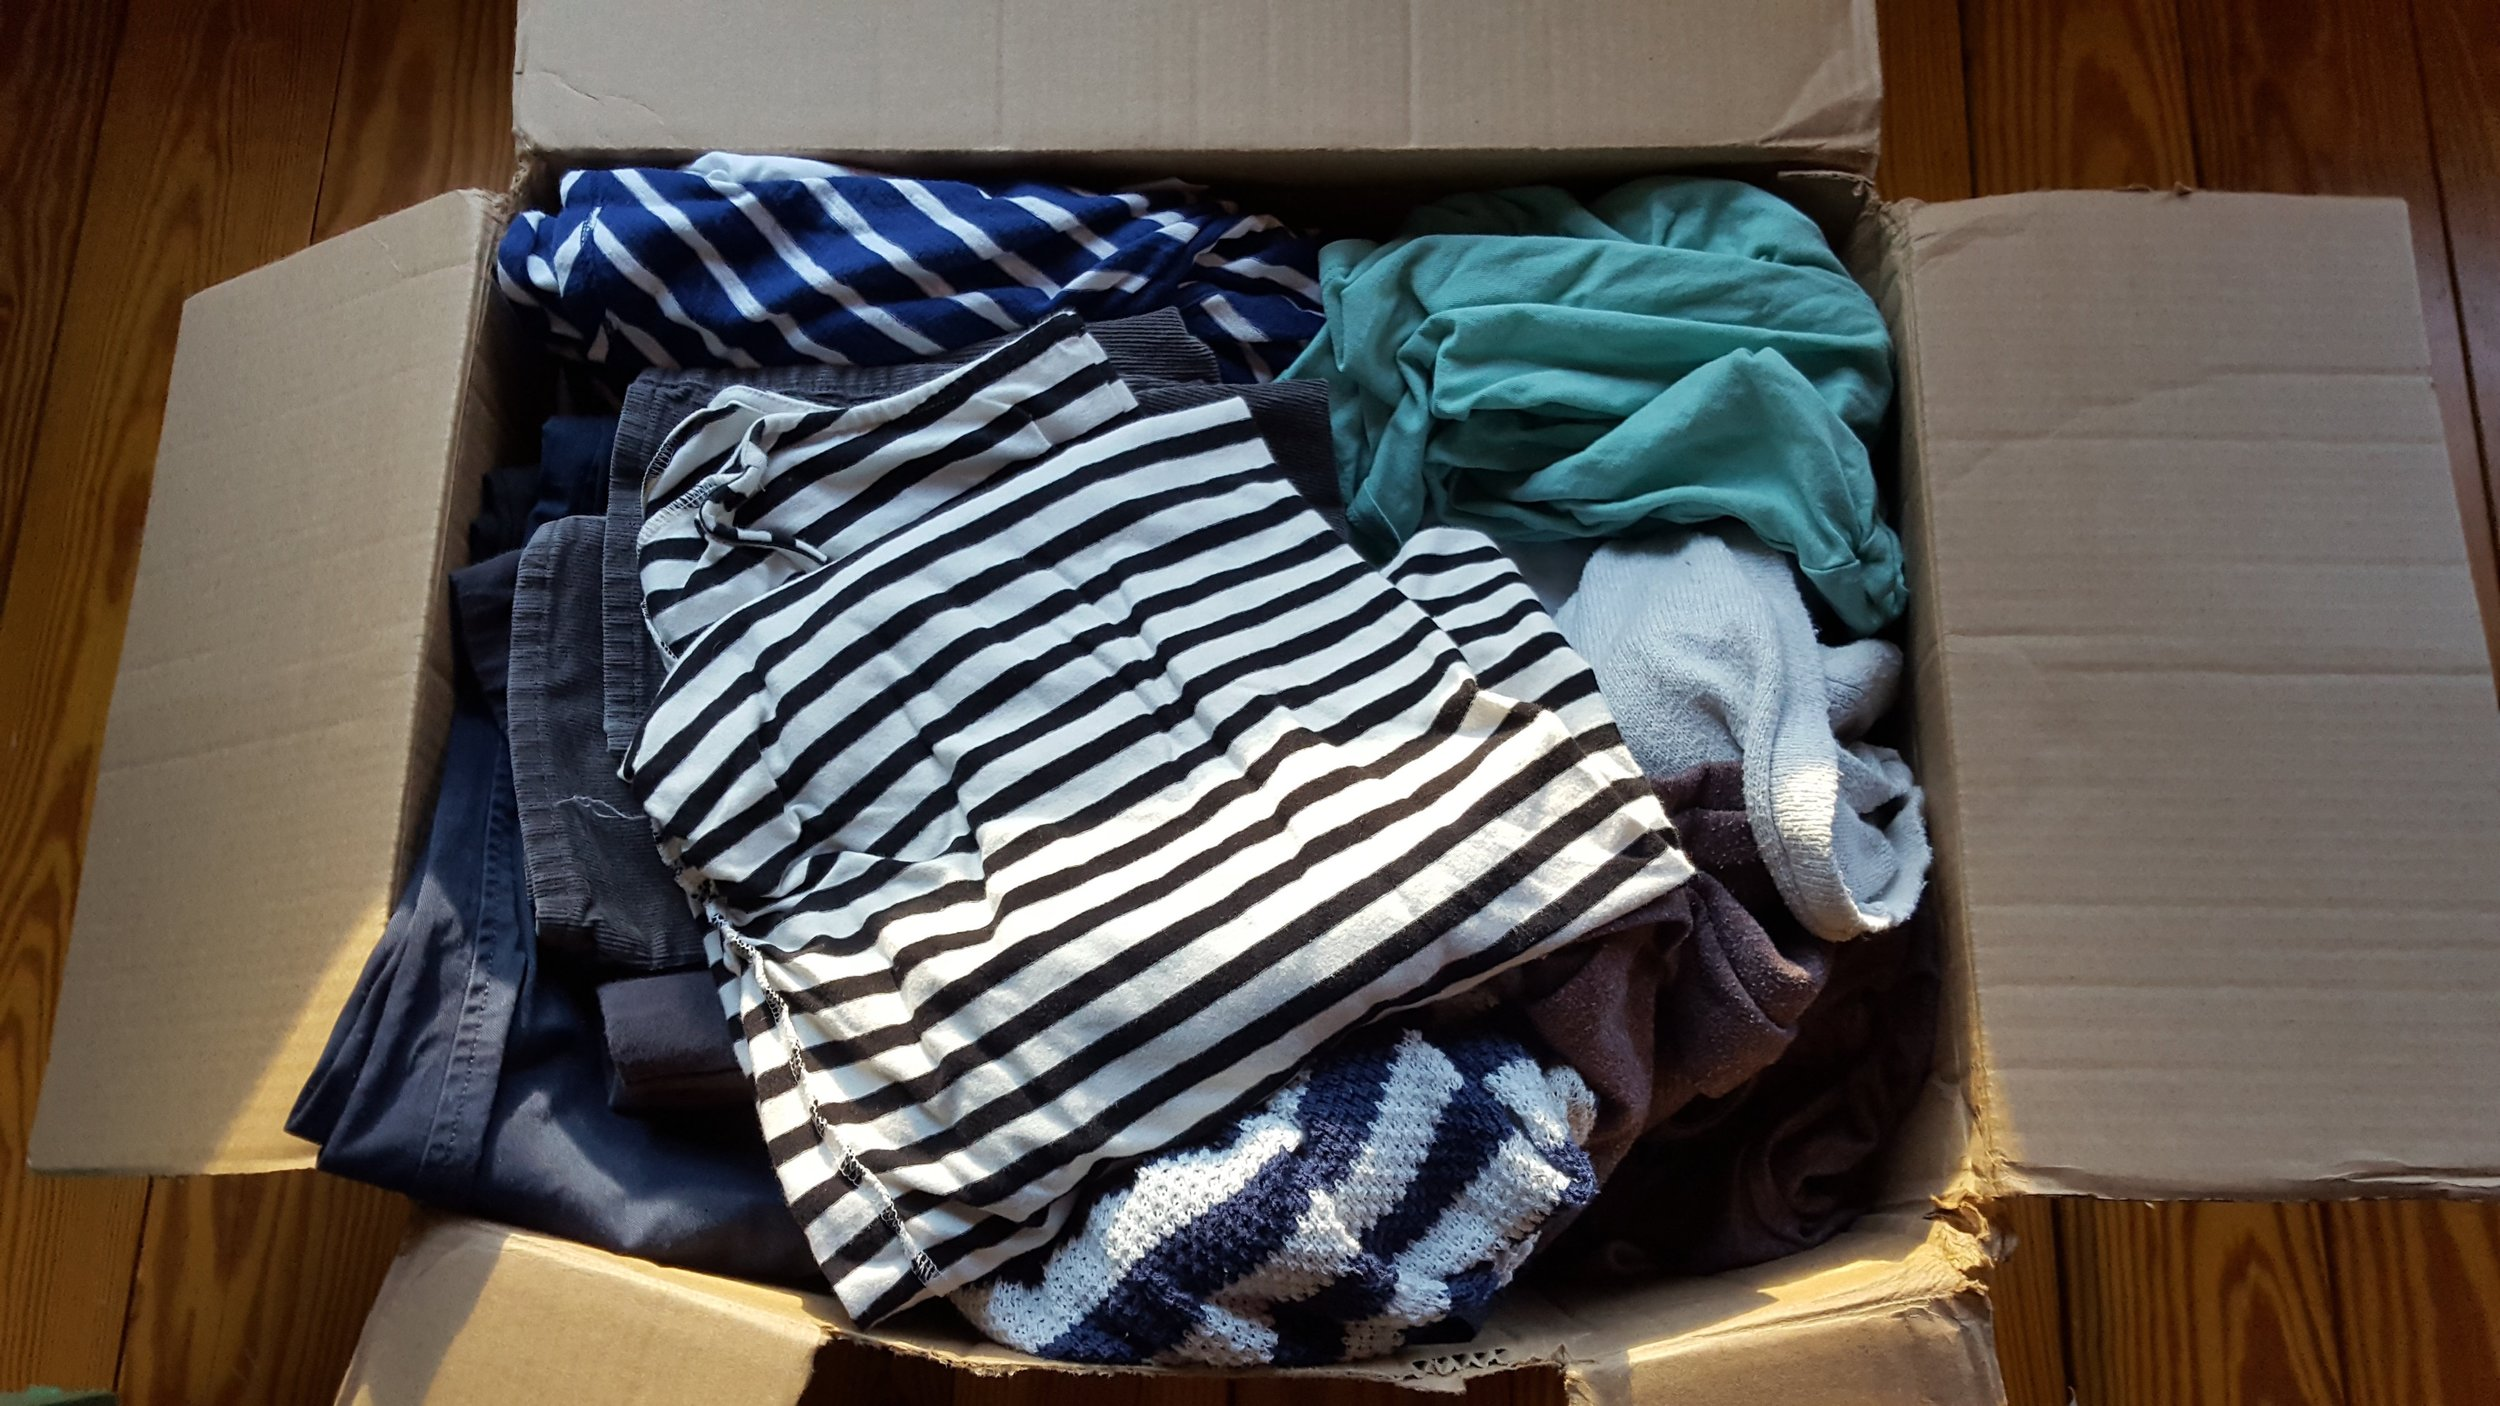 Clothes arrive ready for their fourth round of wear!